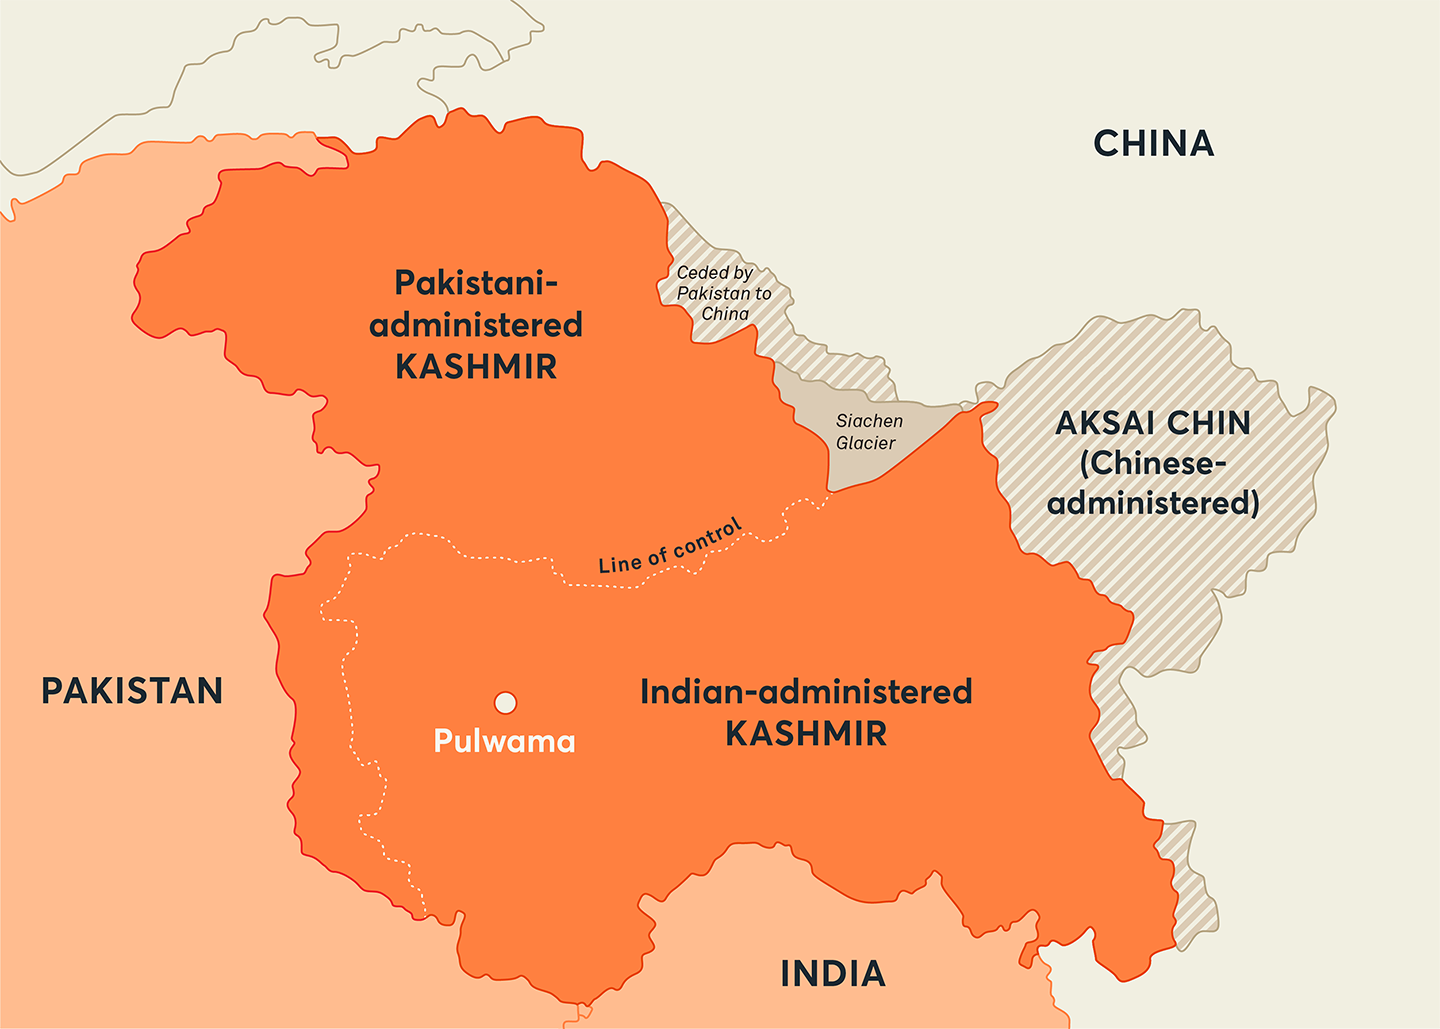 A map showing the demarcated territories amongst Pakistan, China, and India, specifically depicting where the Pulwama district is at, which saw 40 Indian security personnel being attacked in early February 2019.